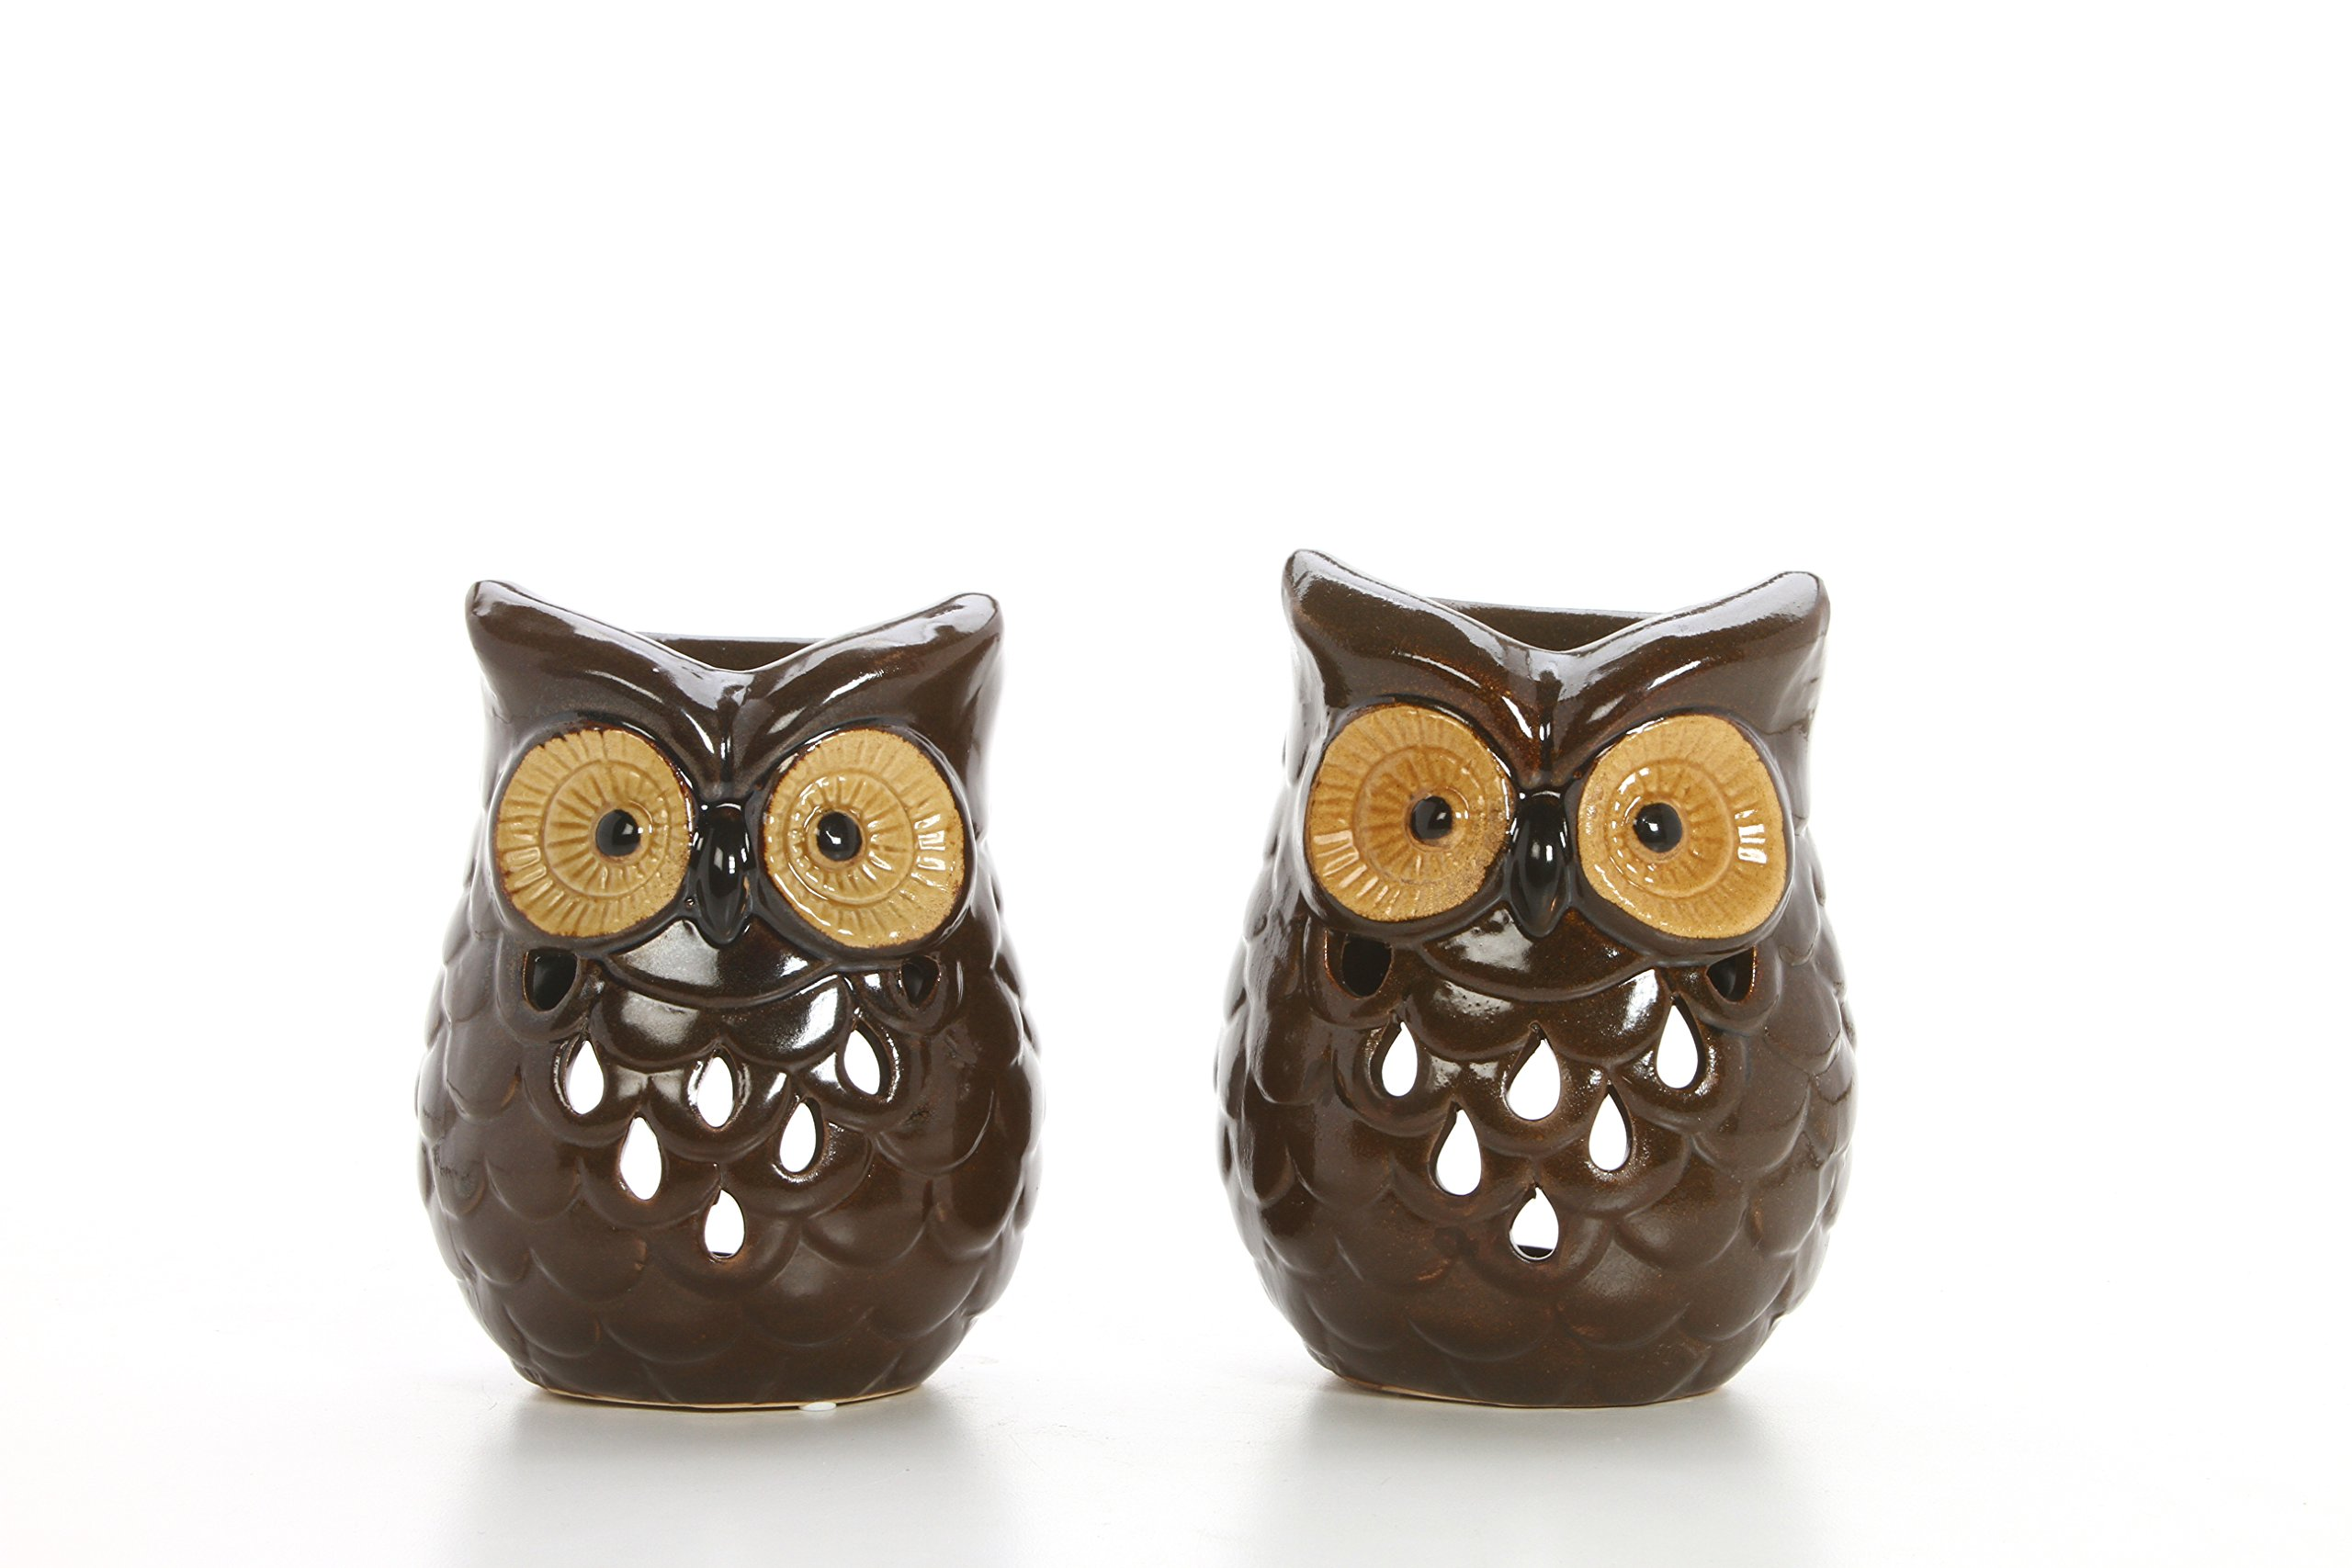 Hosley Set of 2 Ceramic Owl Oil Warmers - 4.9'' High. Use Brand Essential and Fragrance Oils. Ideal Gift for Wedding, Spa, Aromatherapy, Reiki, Votive Candle Garden O9